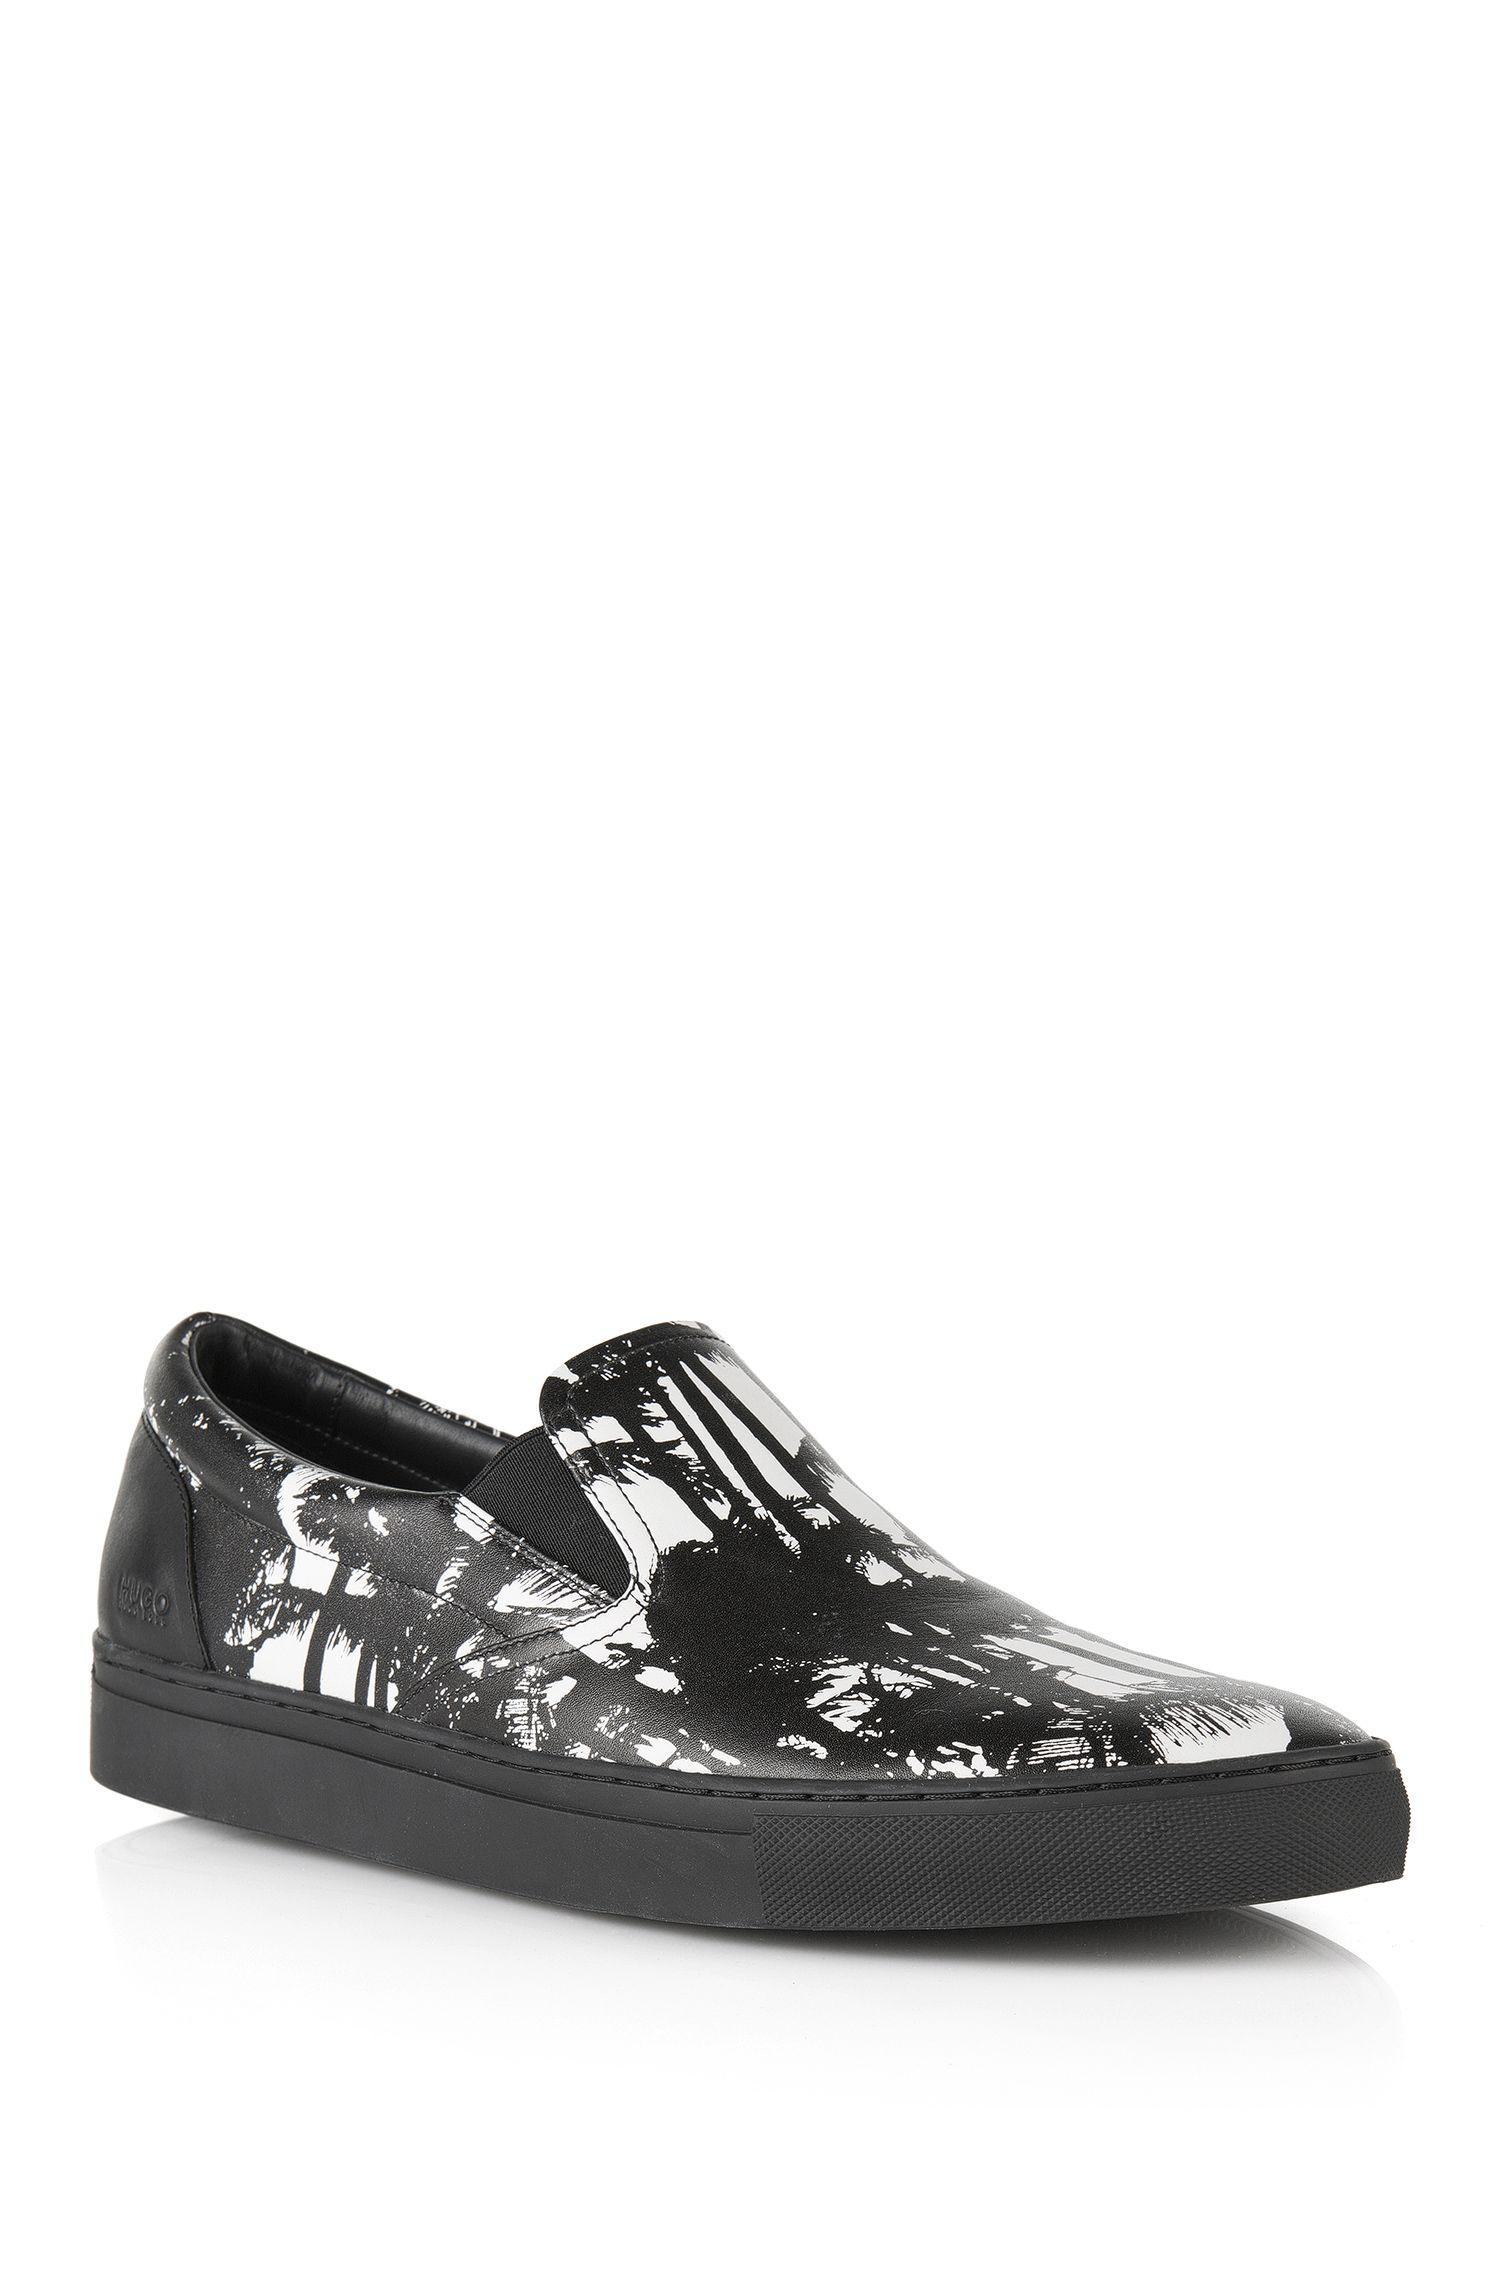 'Fuslip-Palm' | Printed Calfskin Slip-On Sneakers